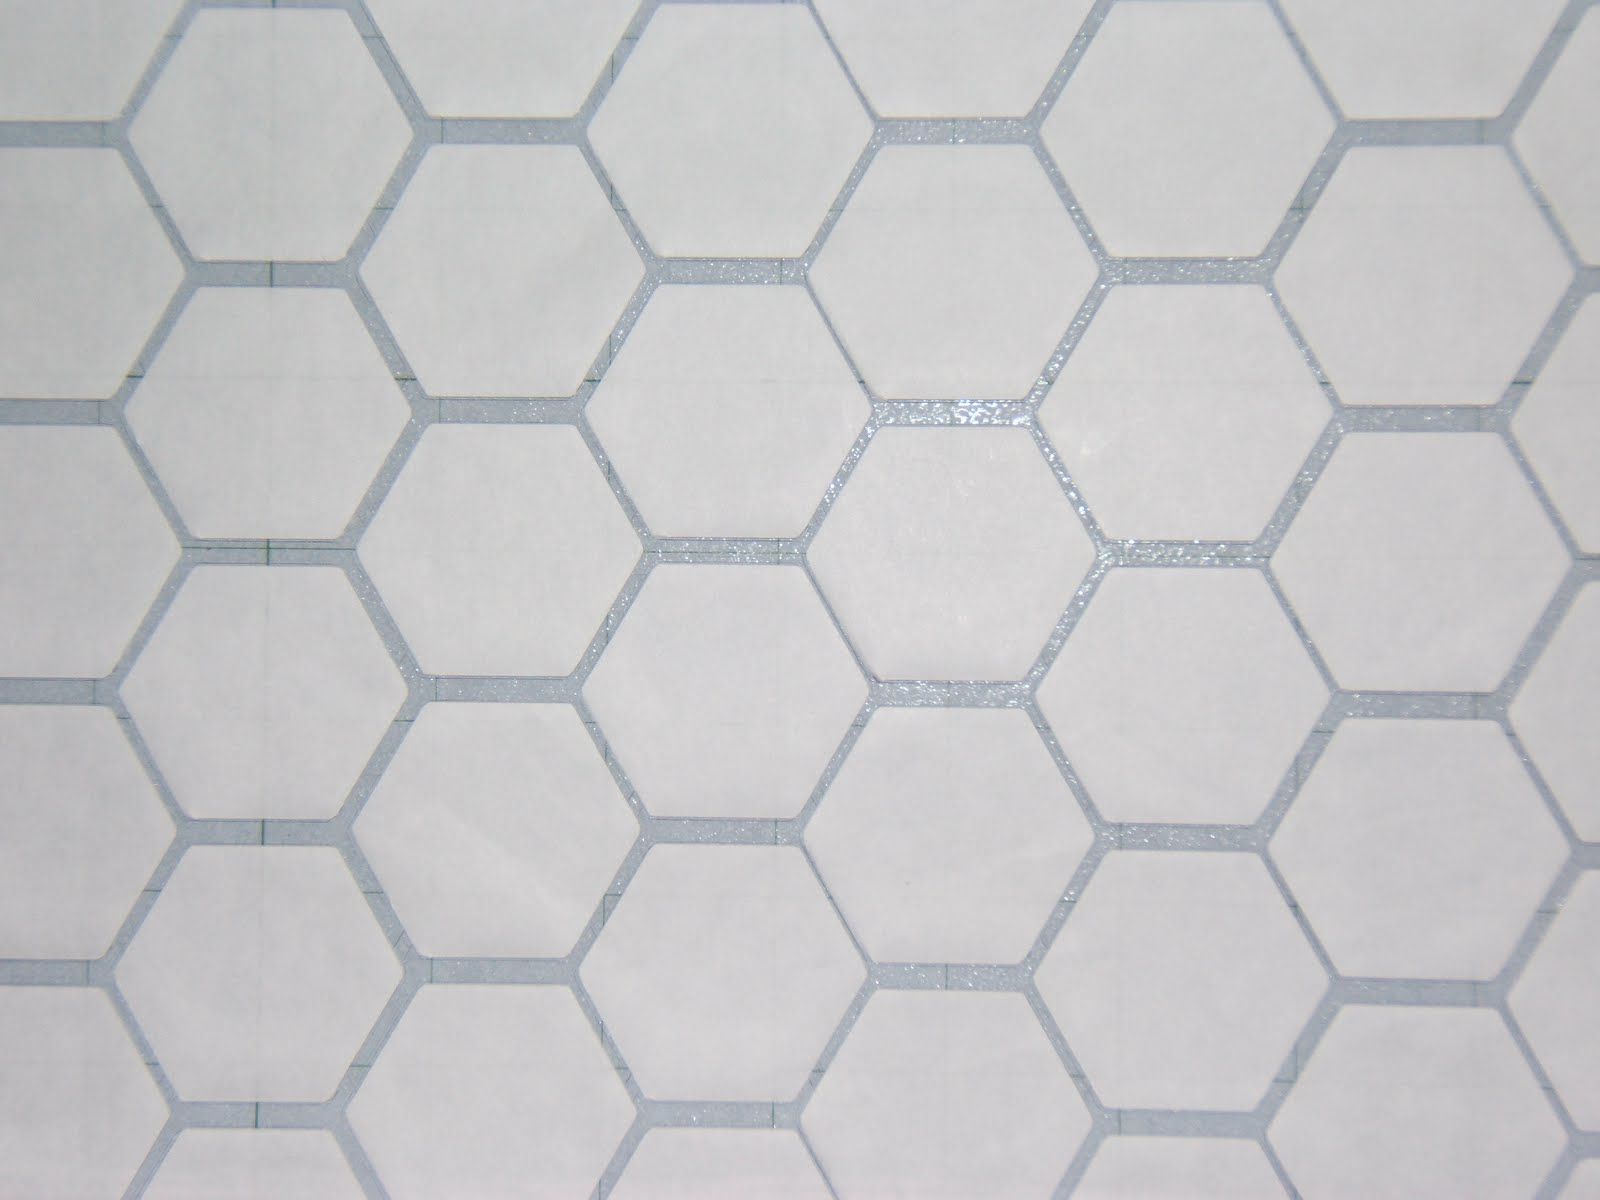 1 5 inch hexagon quilt template for 1 5 inch hexagon template